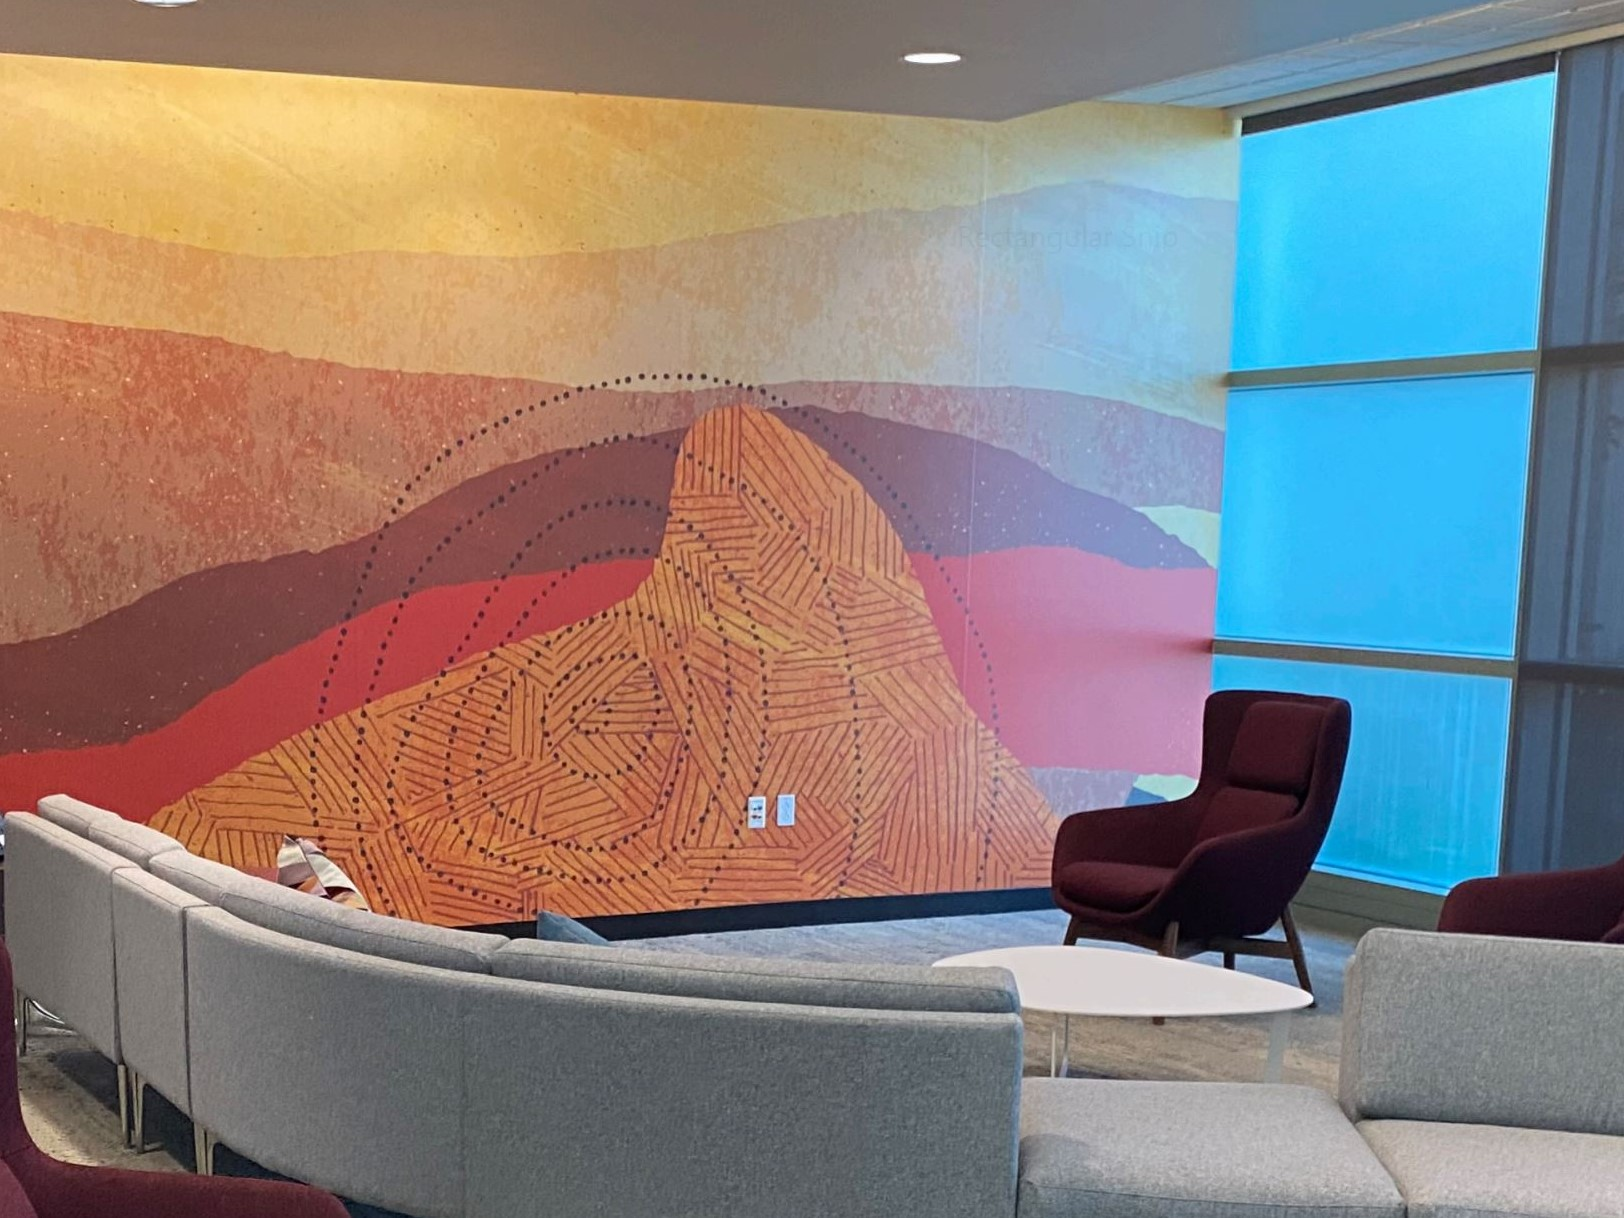 Creating Rhythm In Interior Design With Wall Graphics